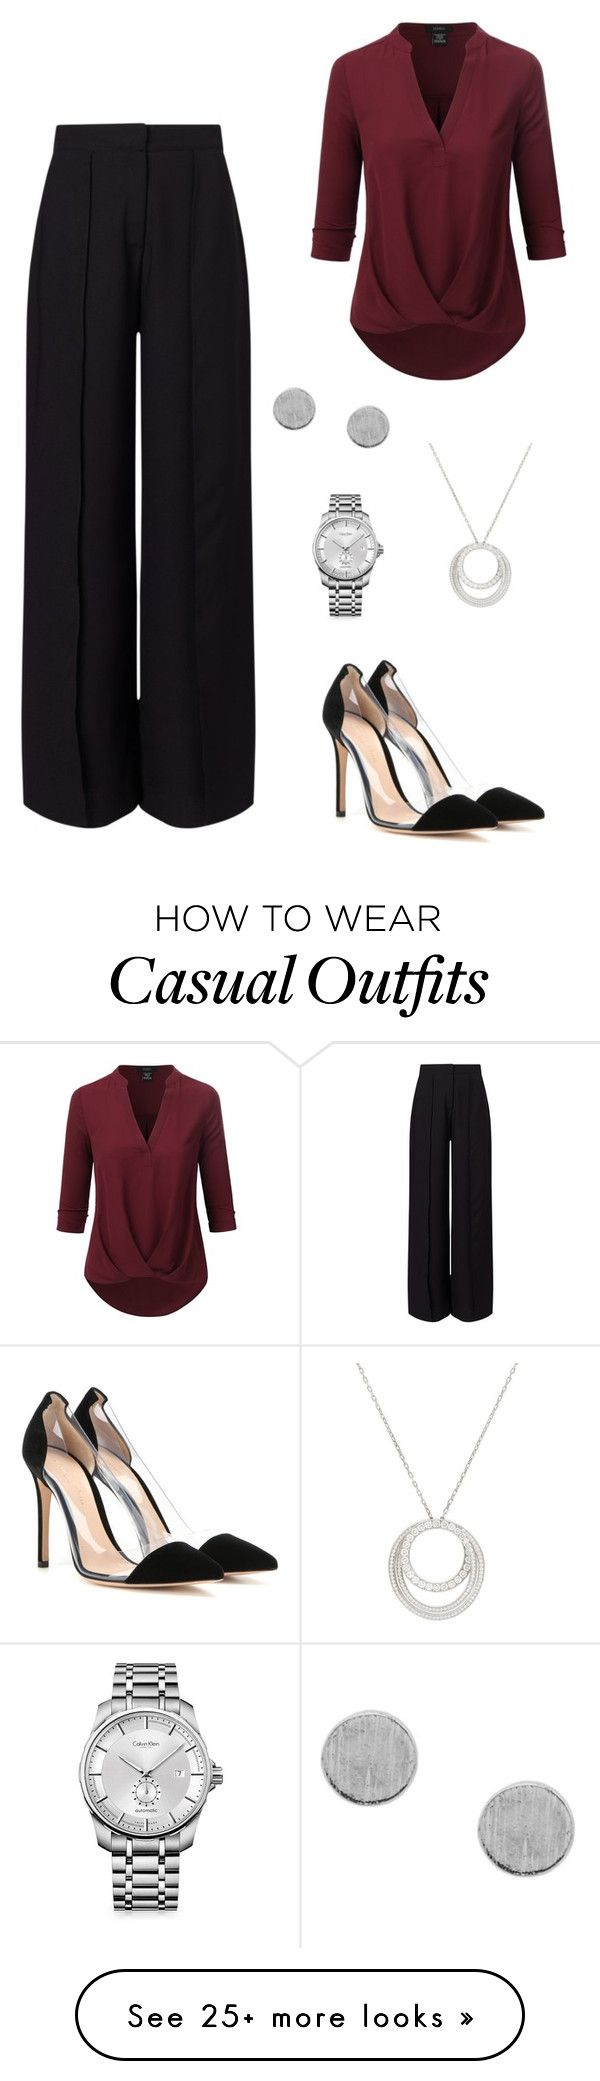 1000 Ideas About Casual Dinner Outfits On Pinterest Dinner